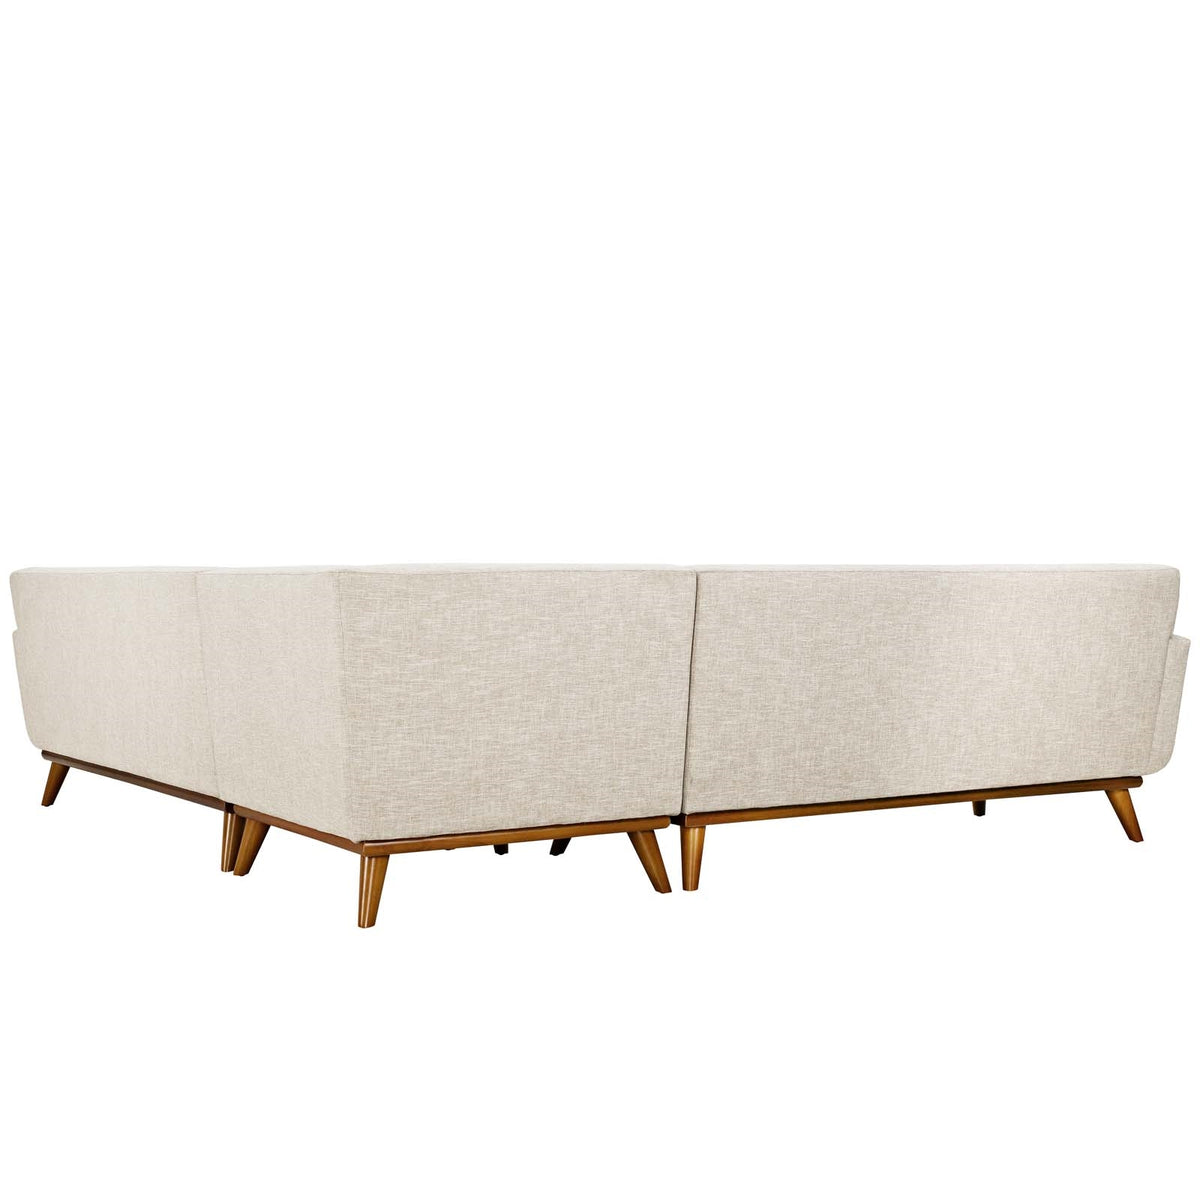 Oska L-Shaped Sectional Sofa Beige